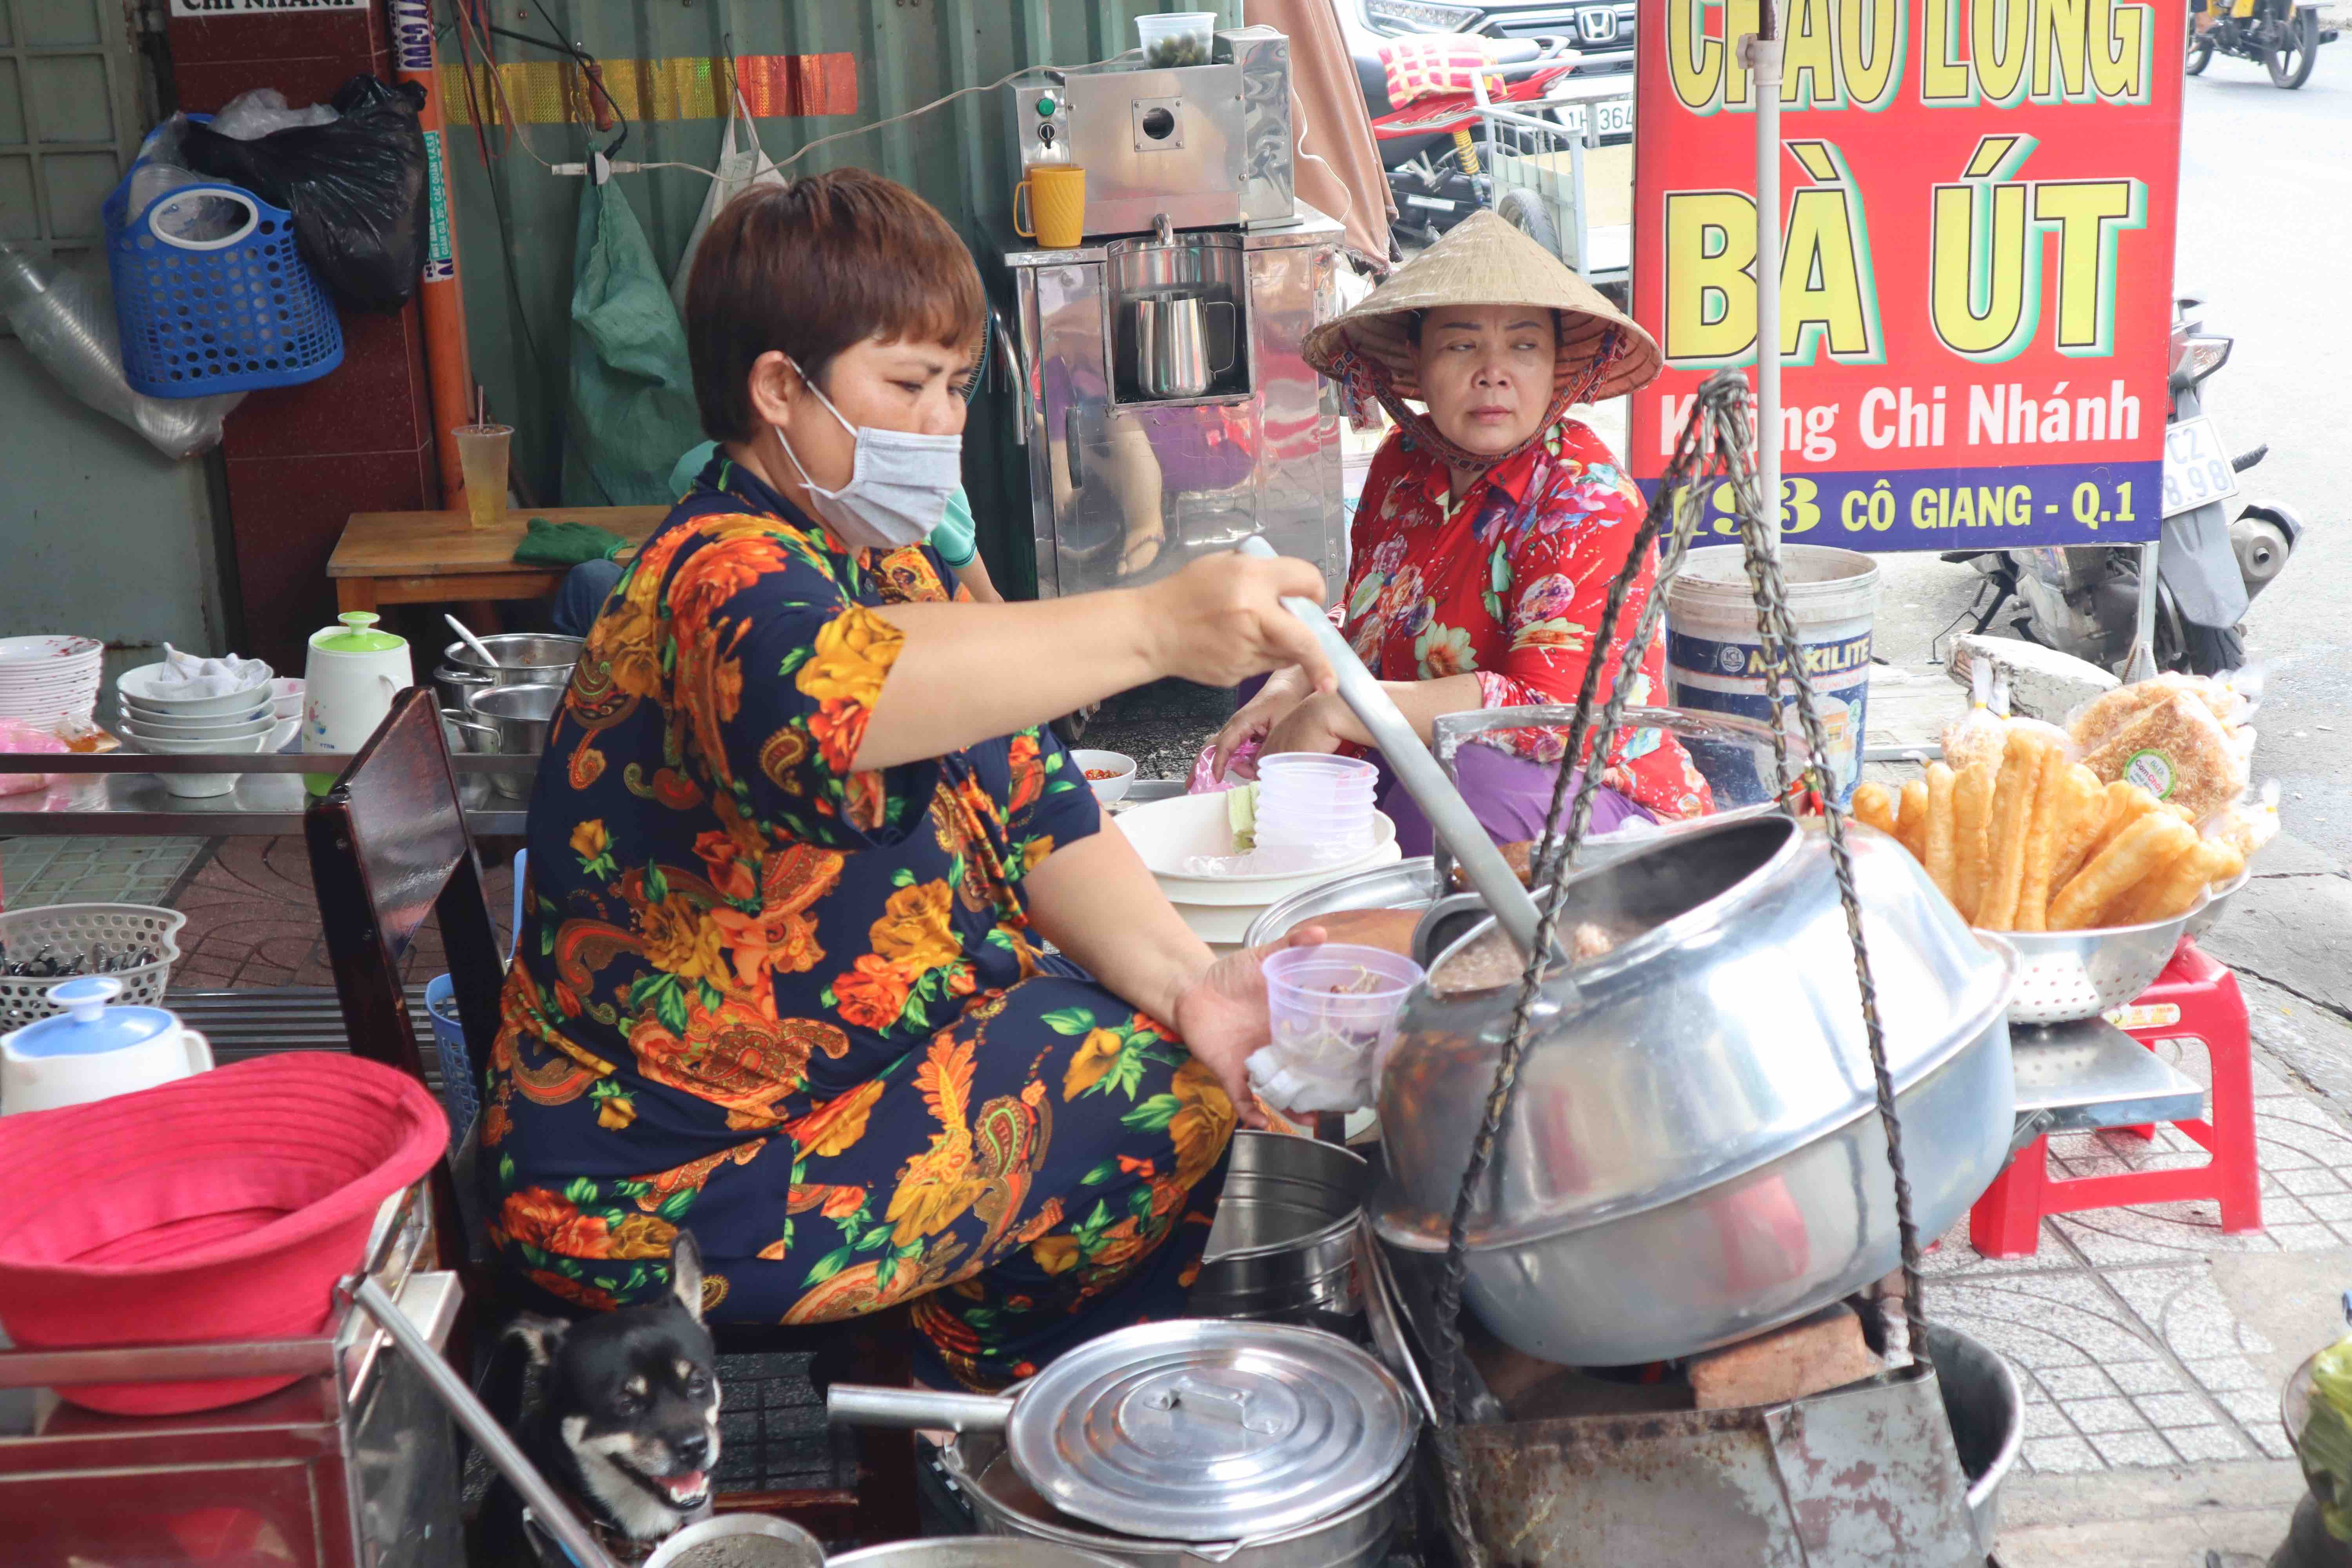 Le Thi Hong Ngoc, the current owner of the chao long stall, serves food at Chao Long Ba Ut on Co Giang Street, District 1, Ho Chi Minh City. Photo: Nam Vuong / Tuoi Tre